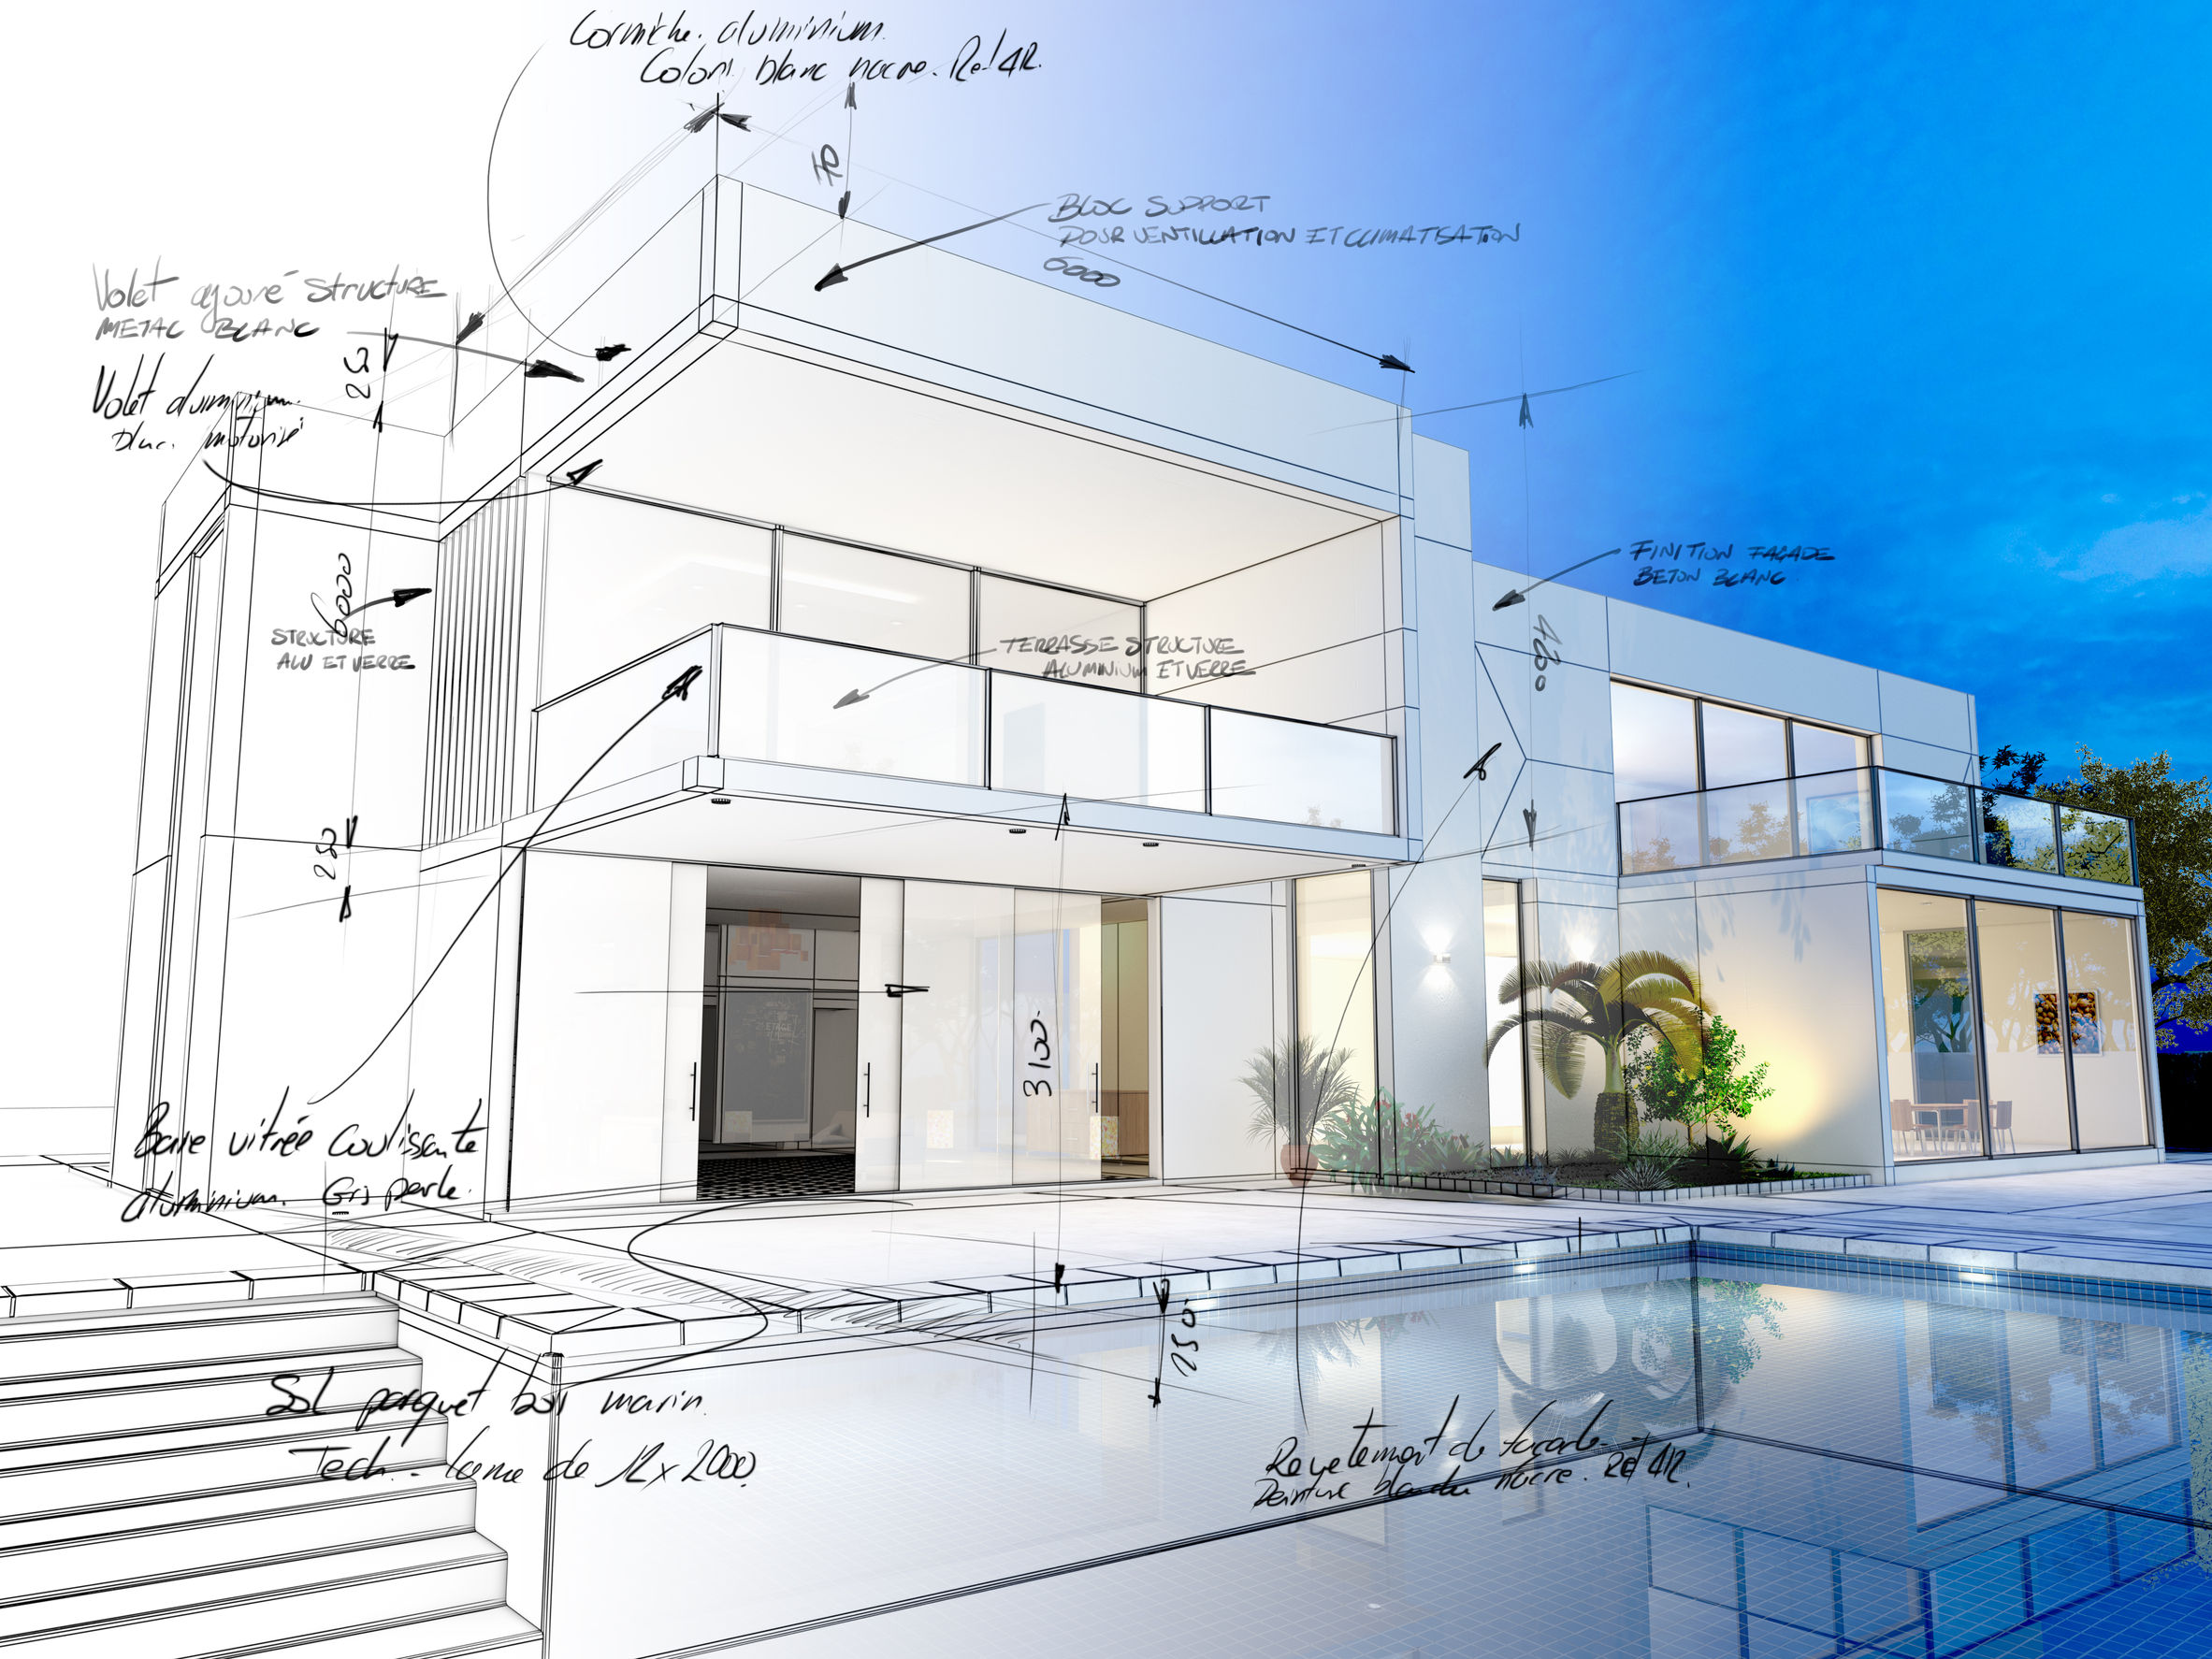 ARCHITECTURAL DESIGN   Designing a sustainable future through building preservation, green architecture, and smart planning.   Learn More